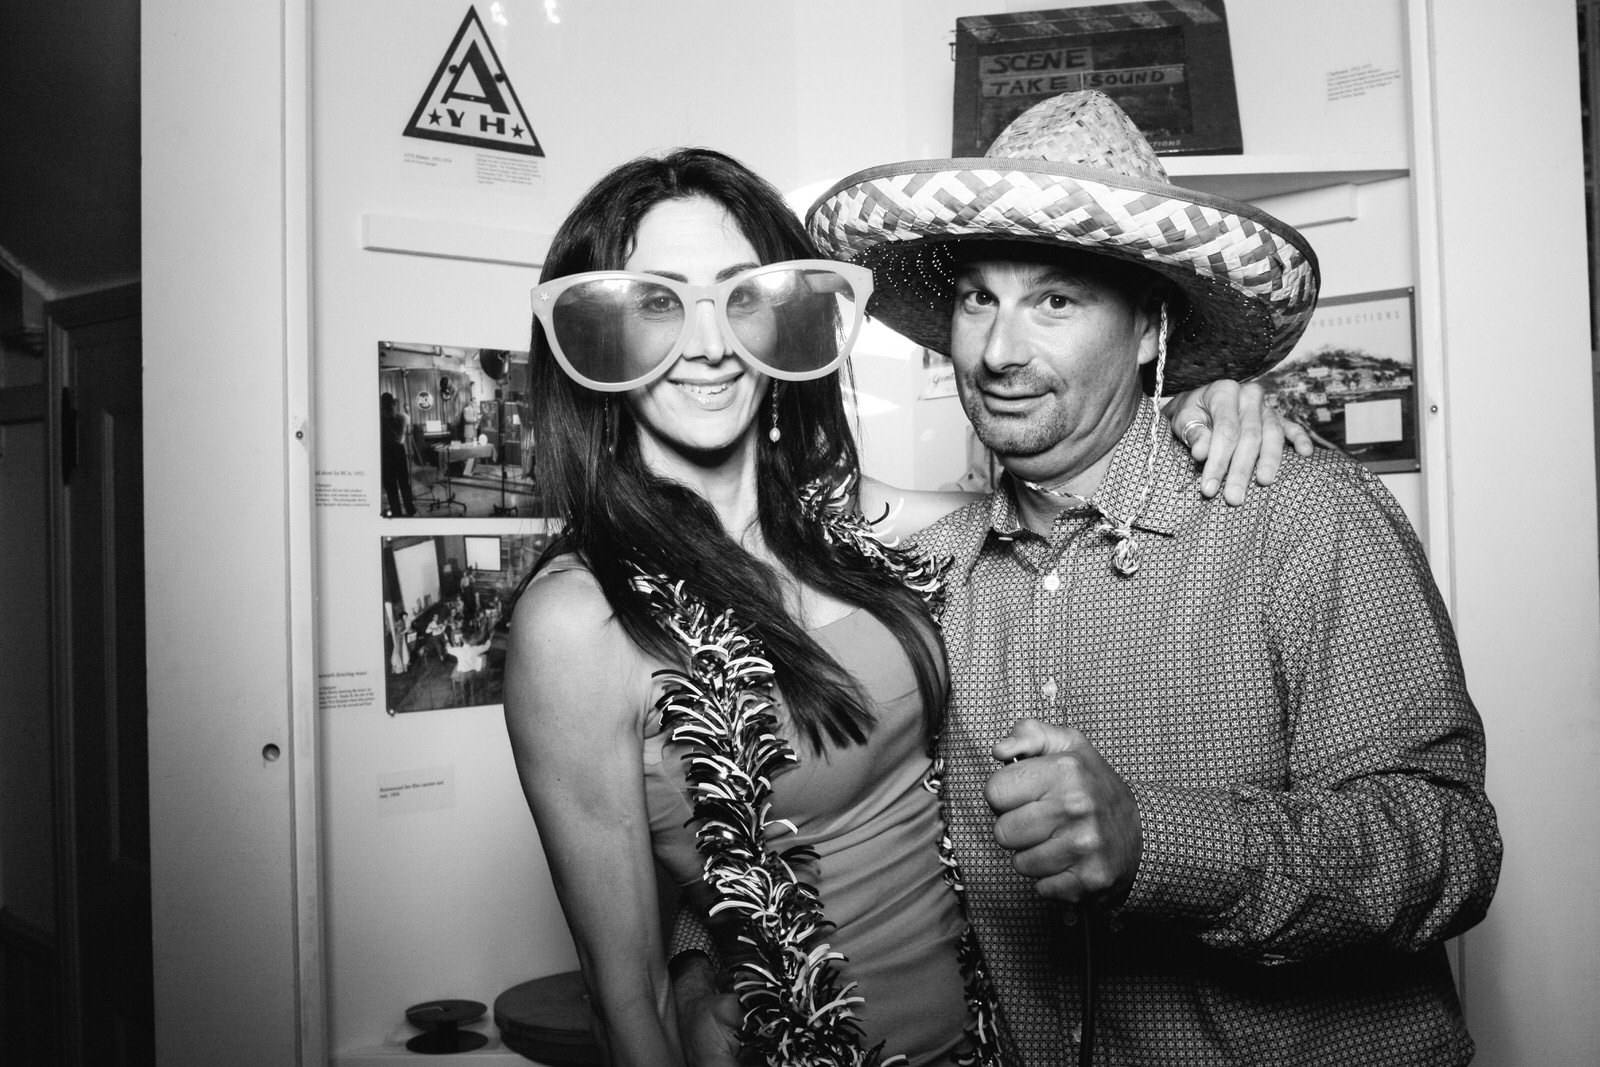 Richard-Donna-Wedding-Photo-Booth-15.jpg